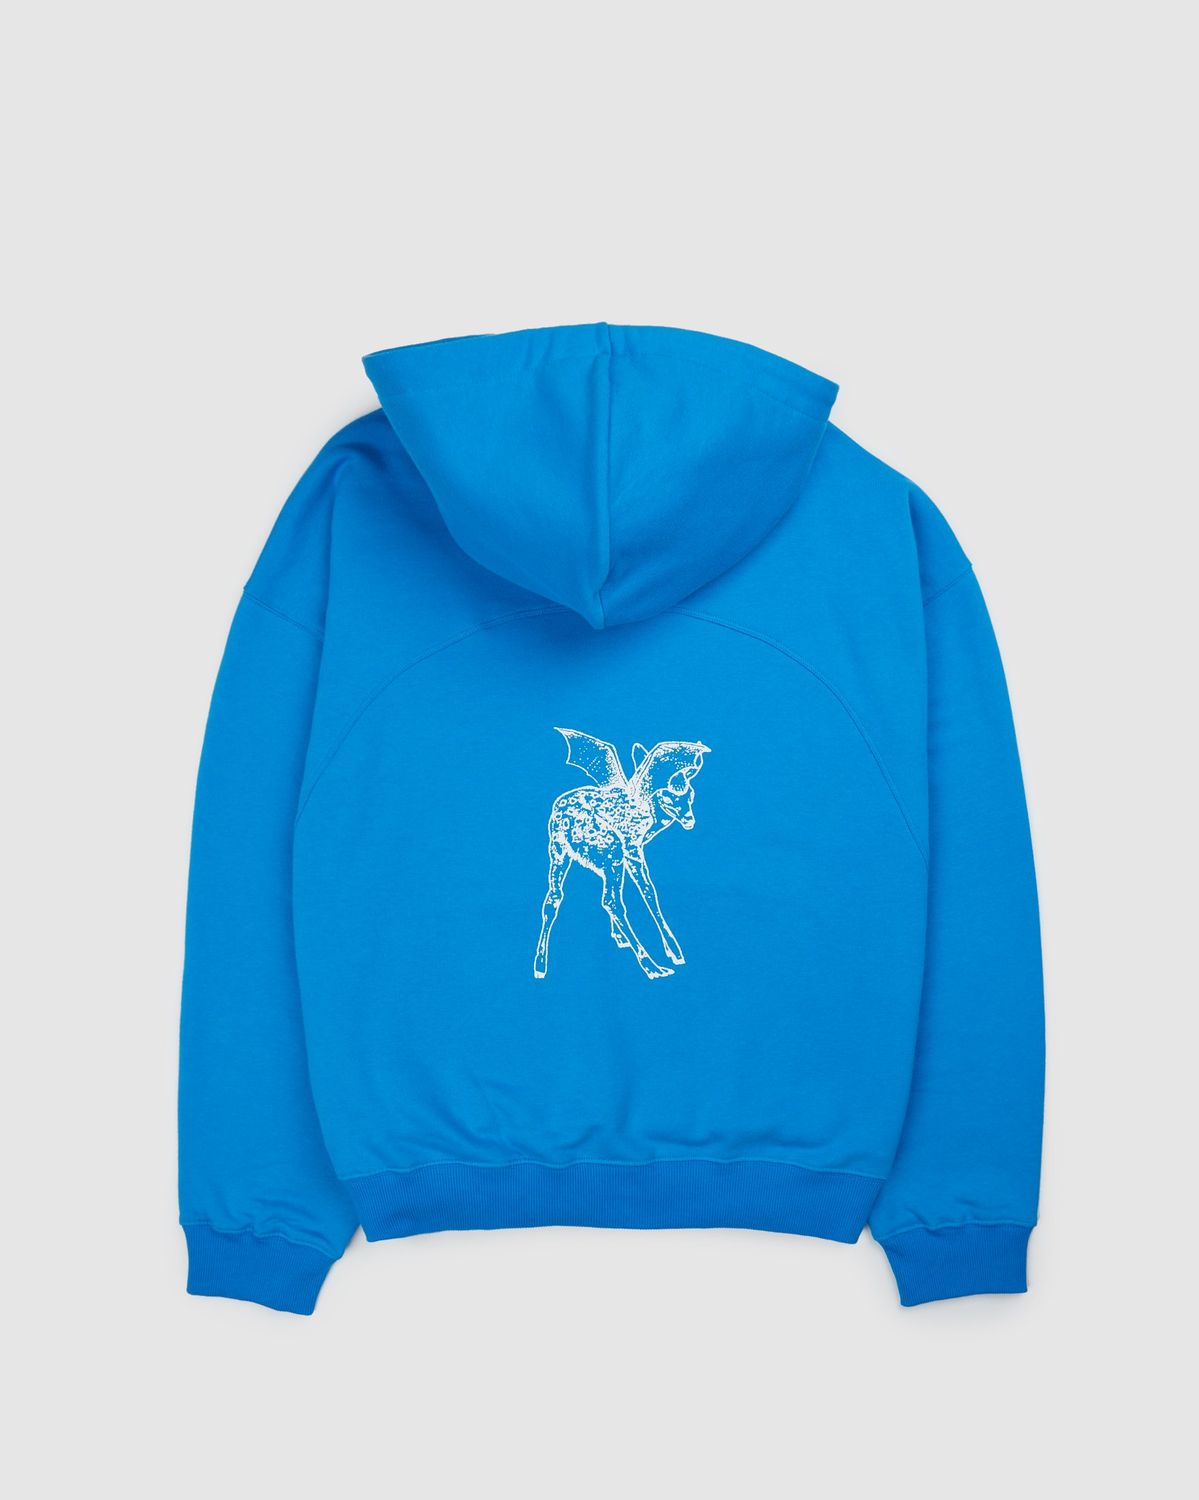 Lourdes NYC - Fawn Hoodie - Blue - Image 1